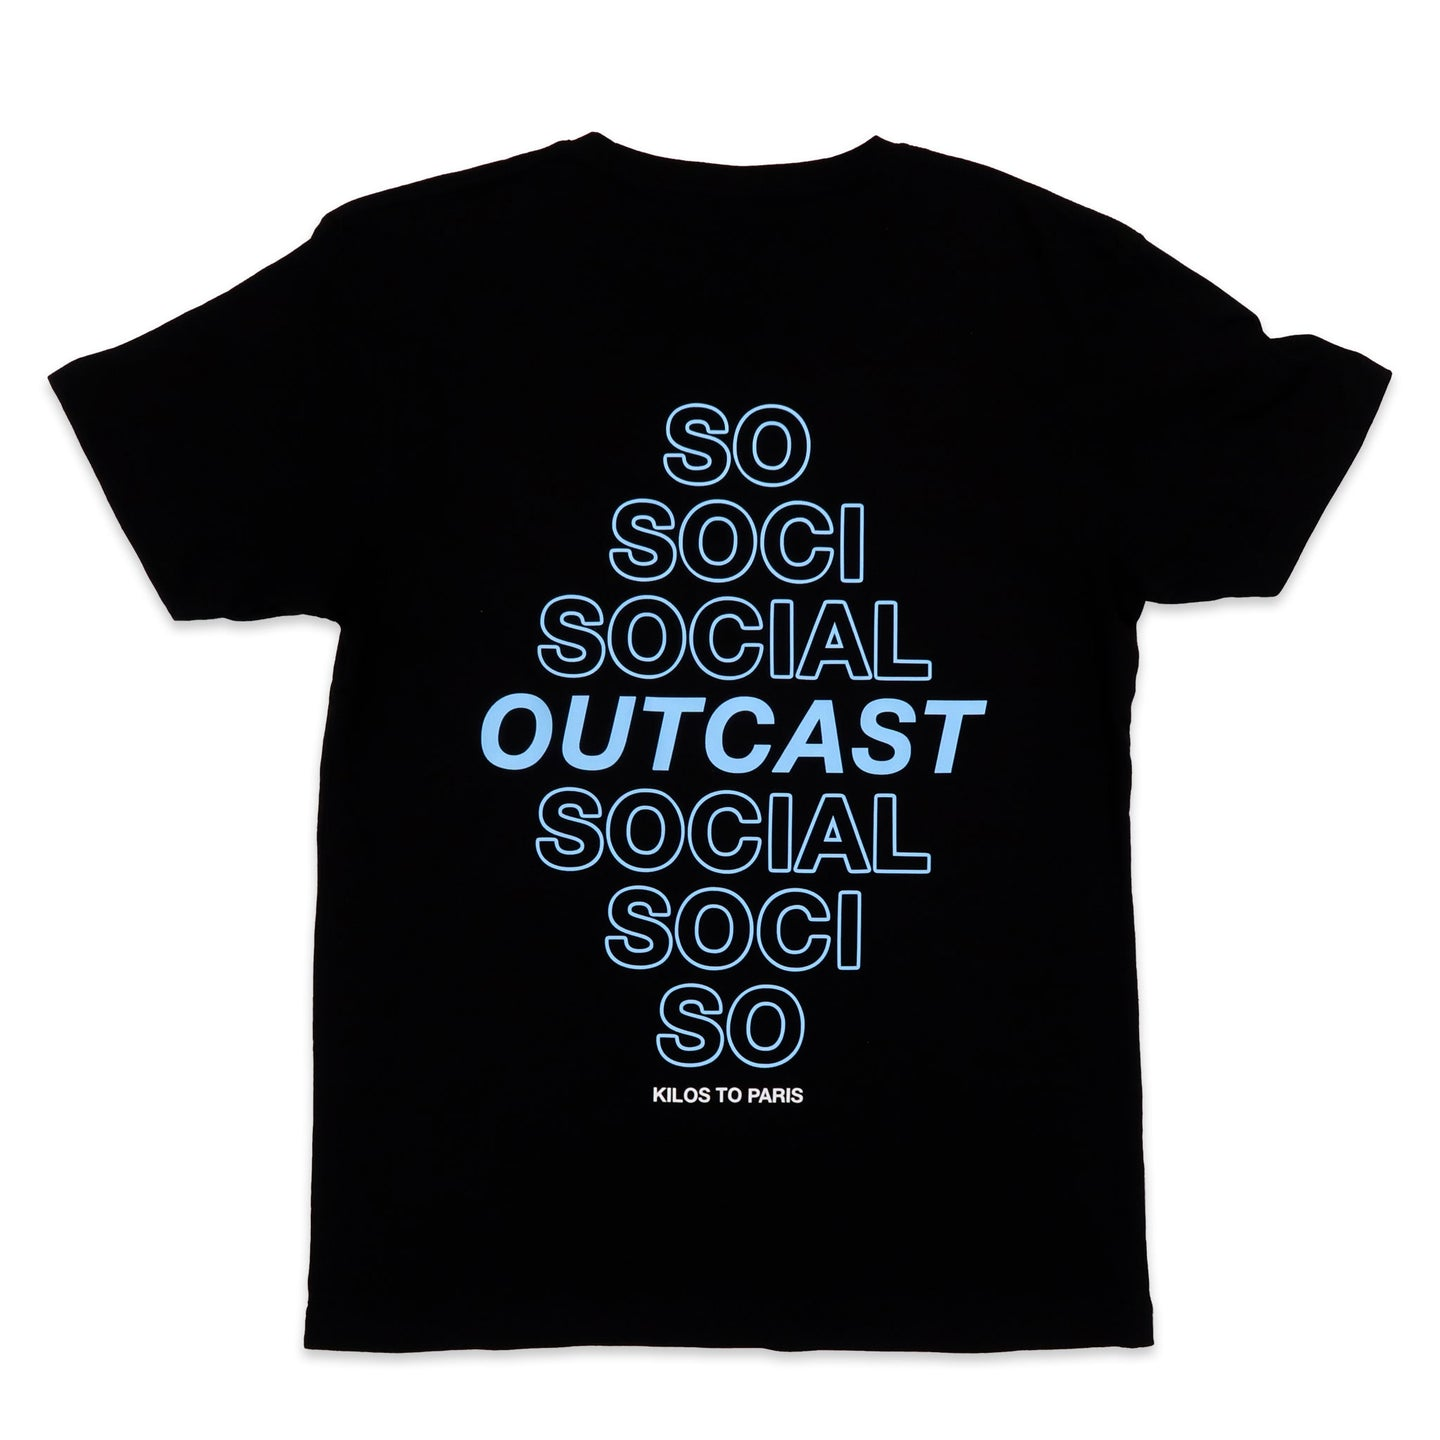 Social Outcast Tee in Black and Sky Blue